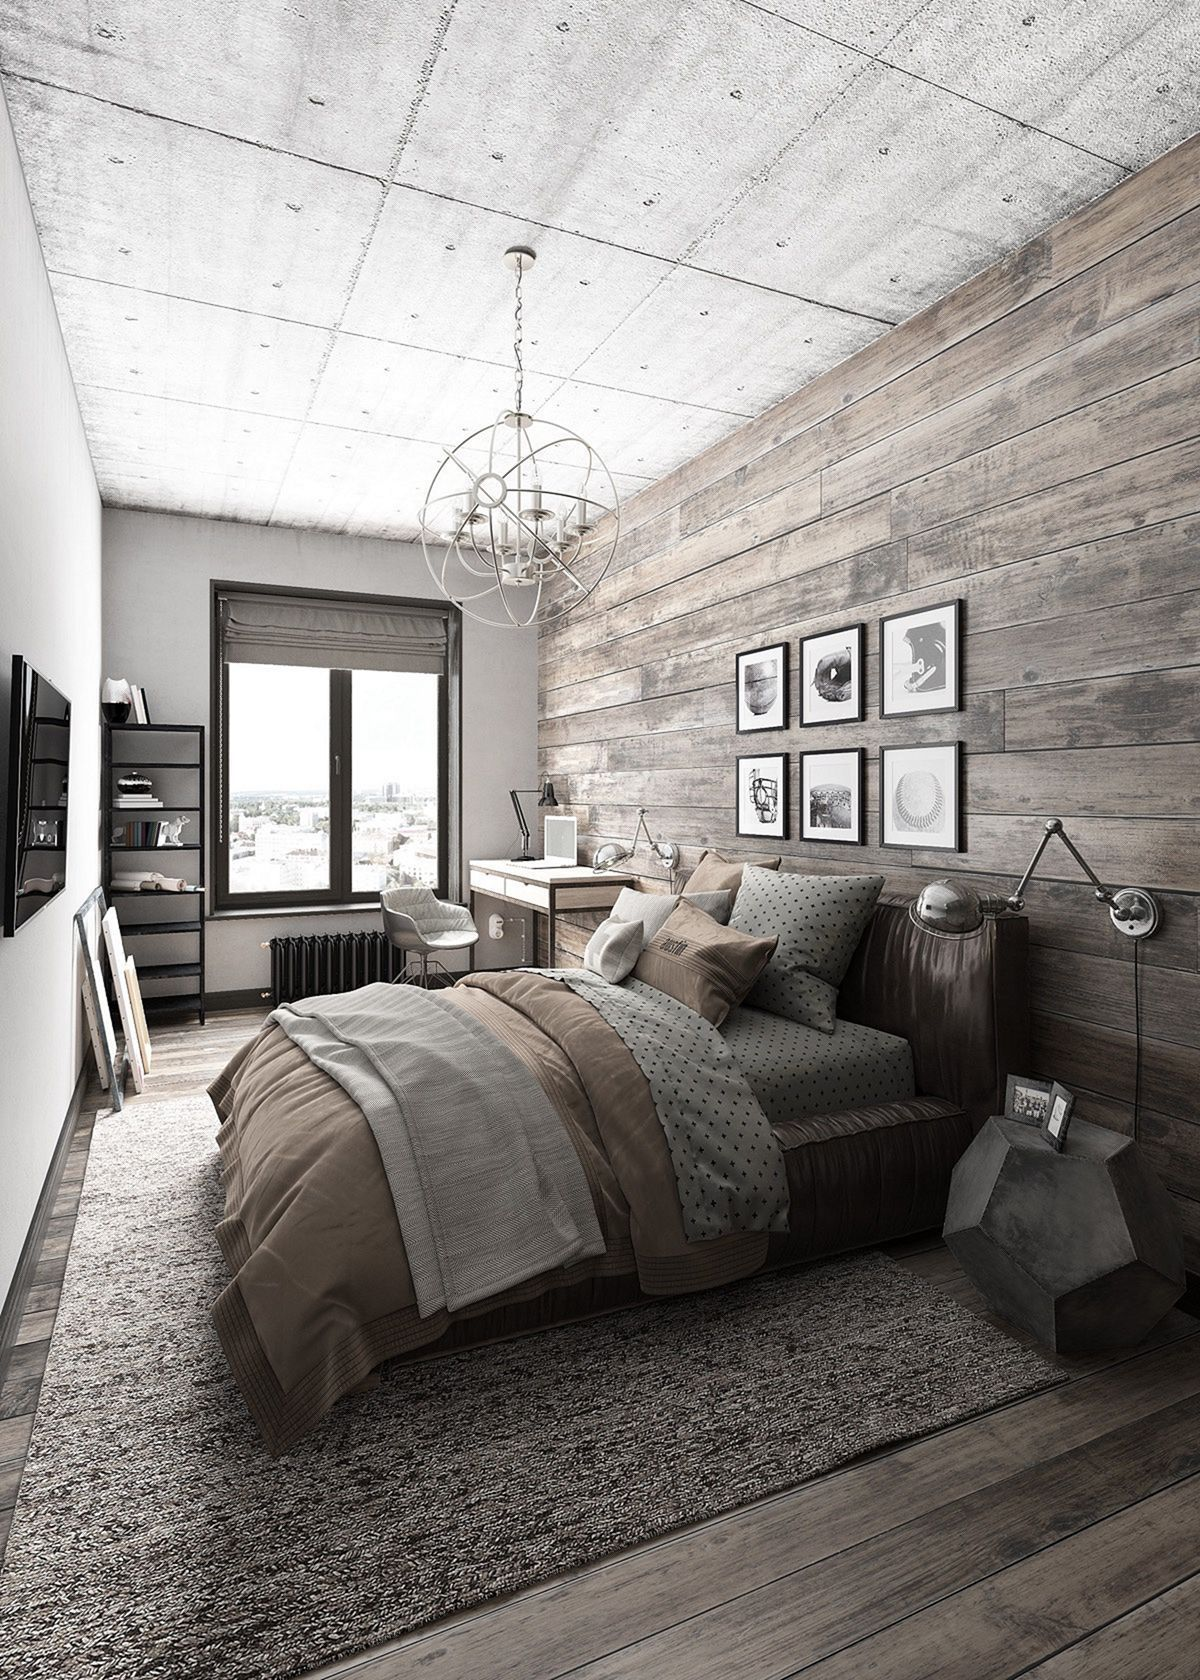 Awesome Industrial Bedroom Design Ideas For Unique Bedroom Style ... for Industrial Farmhouse Bedroom  579cpg